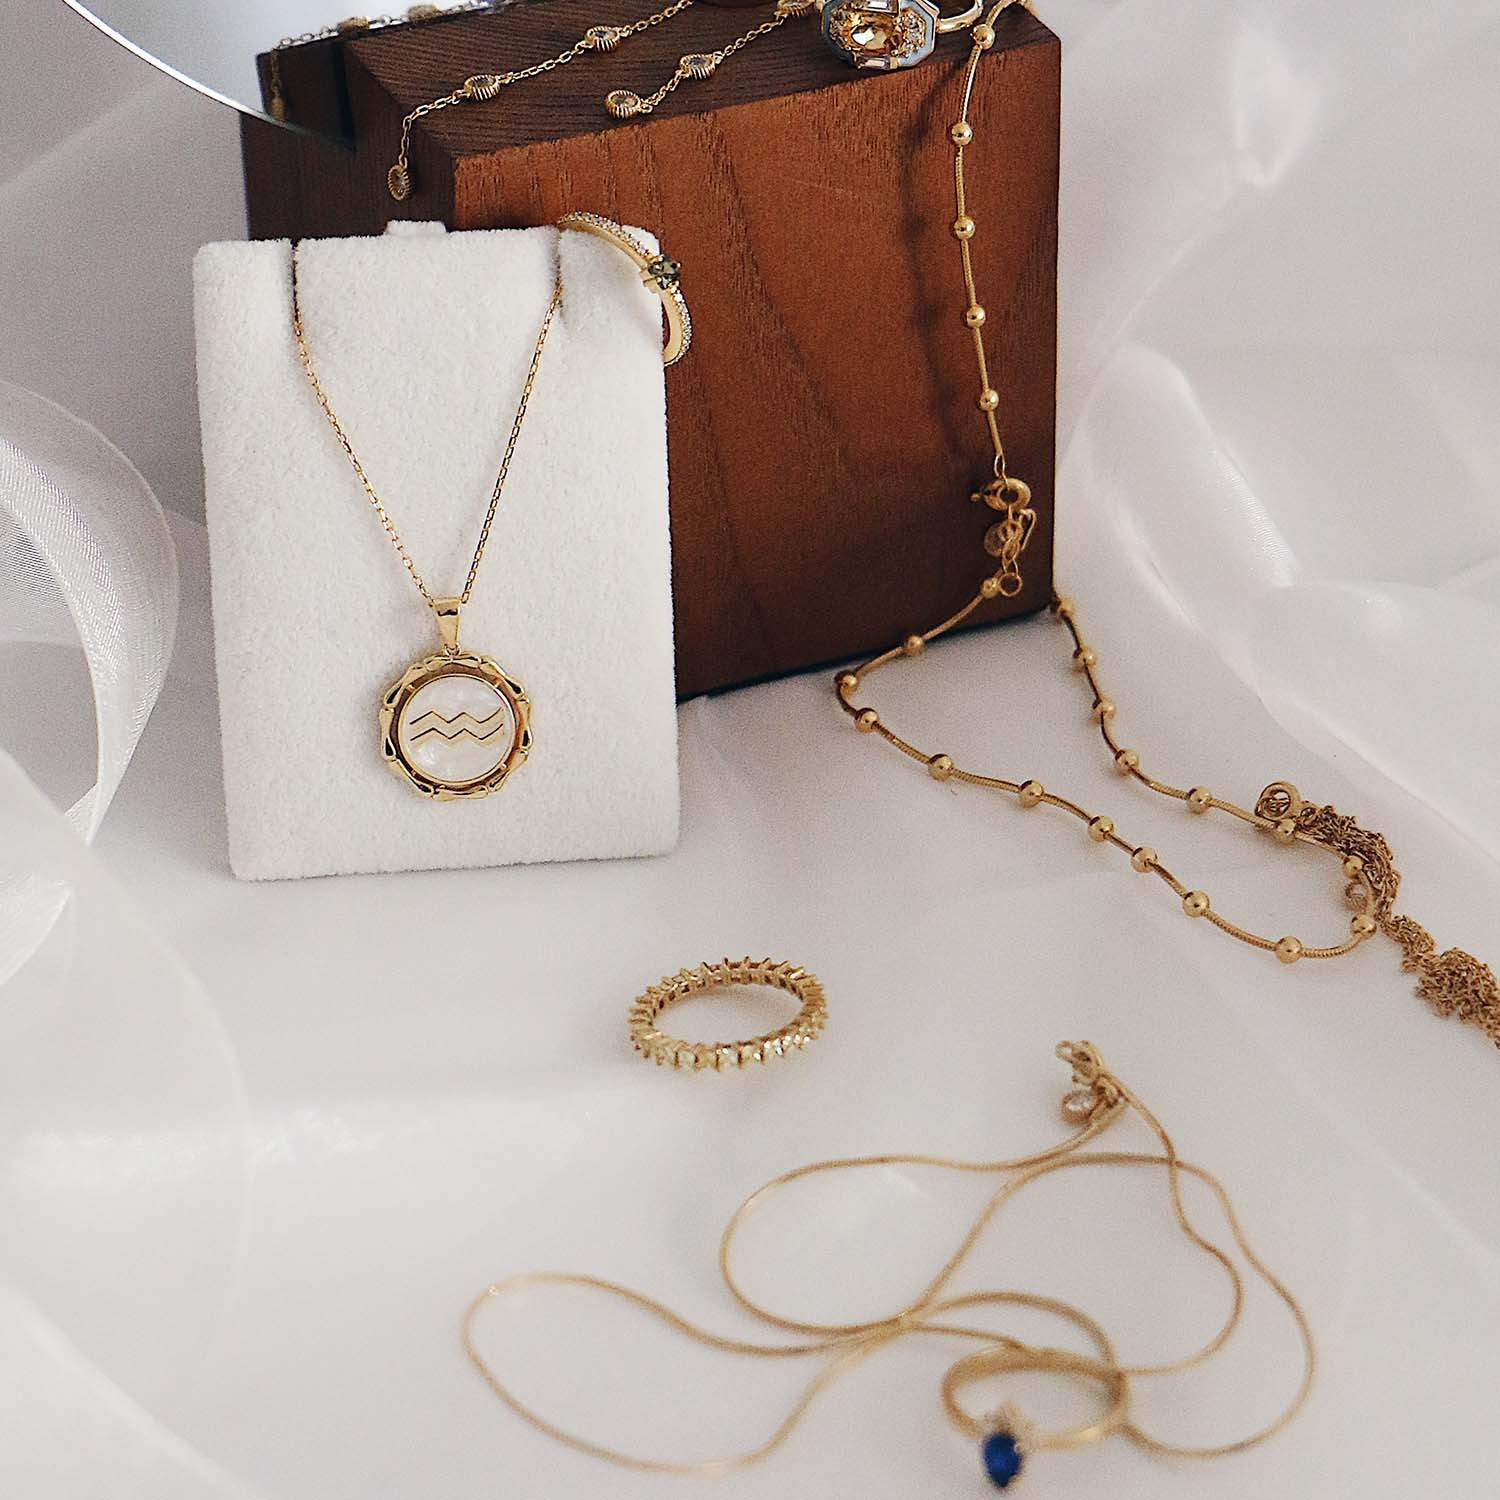 gold plated horoscope necklace